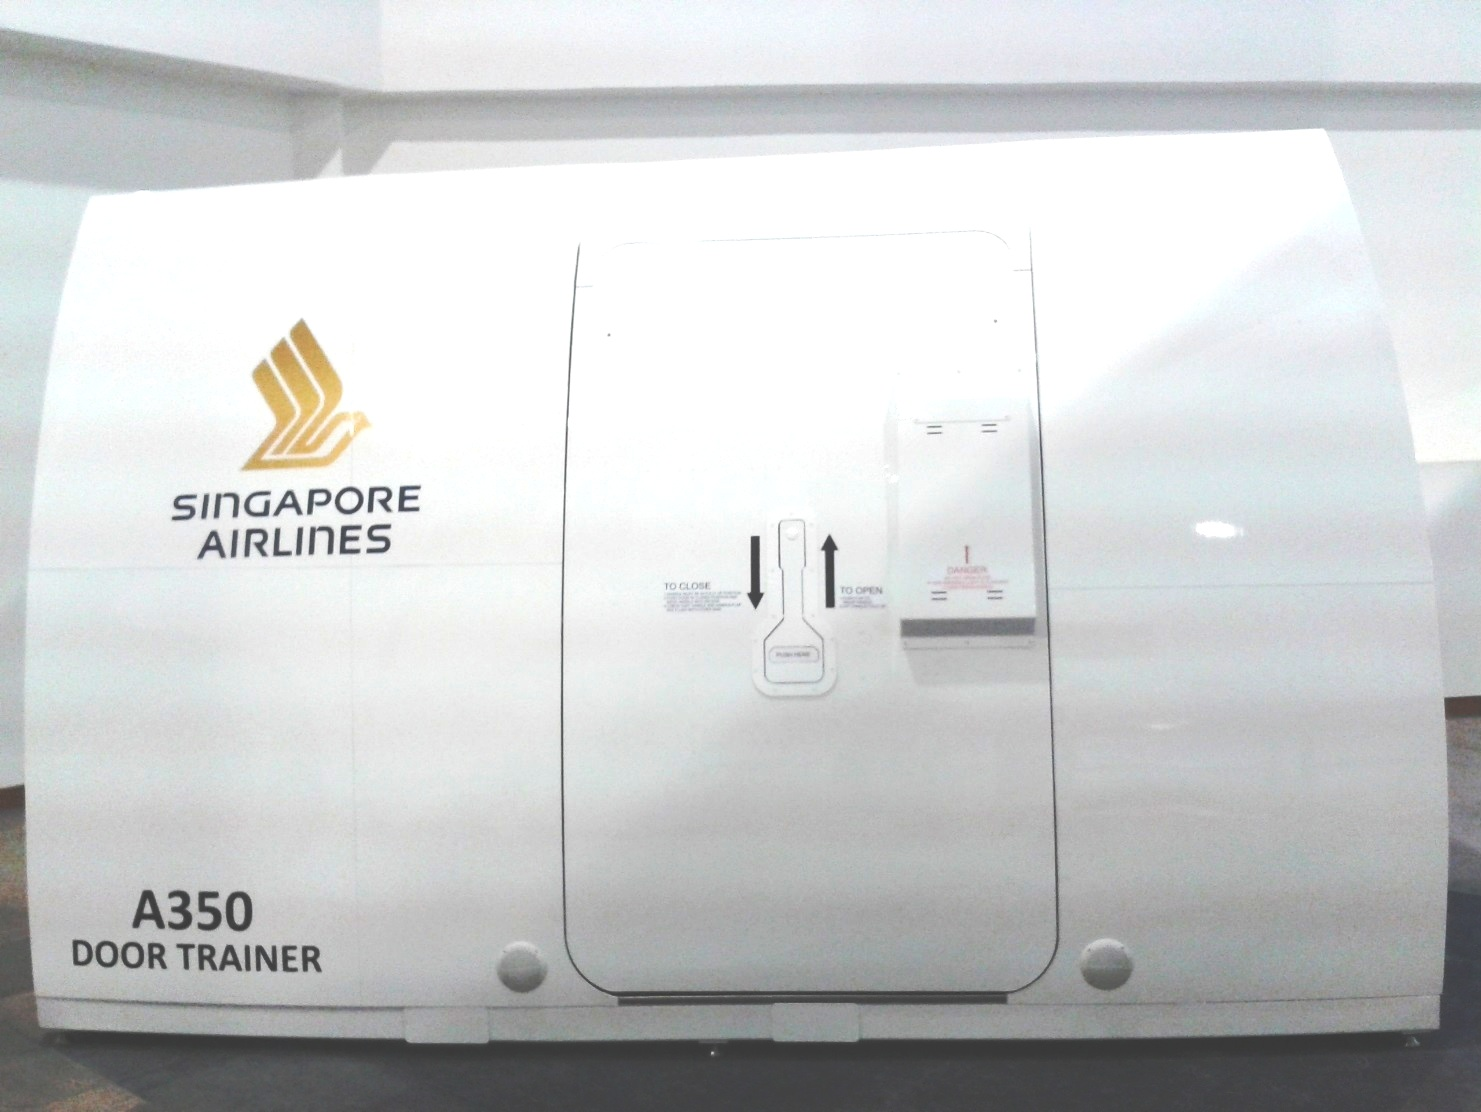 EDM announced last month the A350 Door Trainer it manufactured for Singapore Airlines passed its Site Acceptance Test (SAT). & A350 XWB News: A350 Door Trainer manufactured for Singapore Airlines. pezcame.com